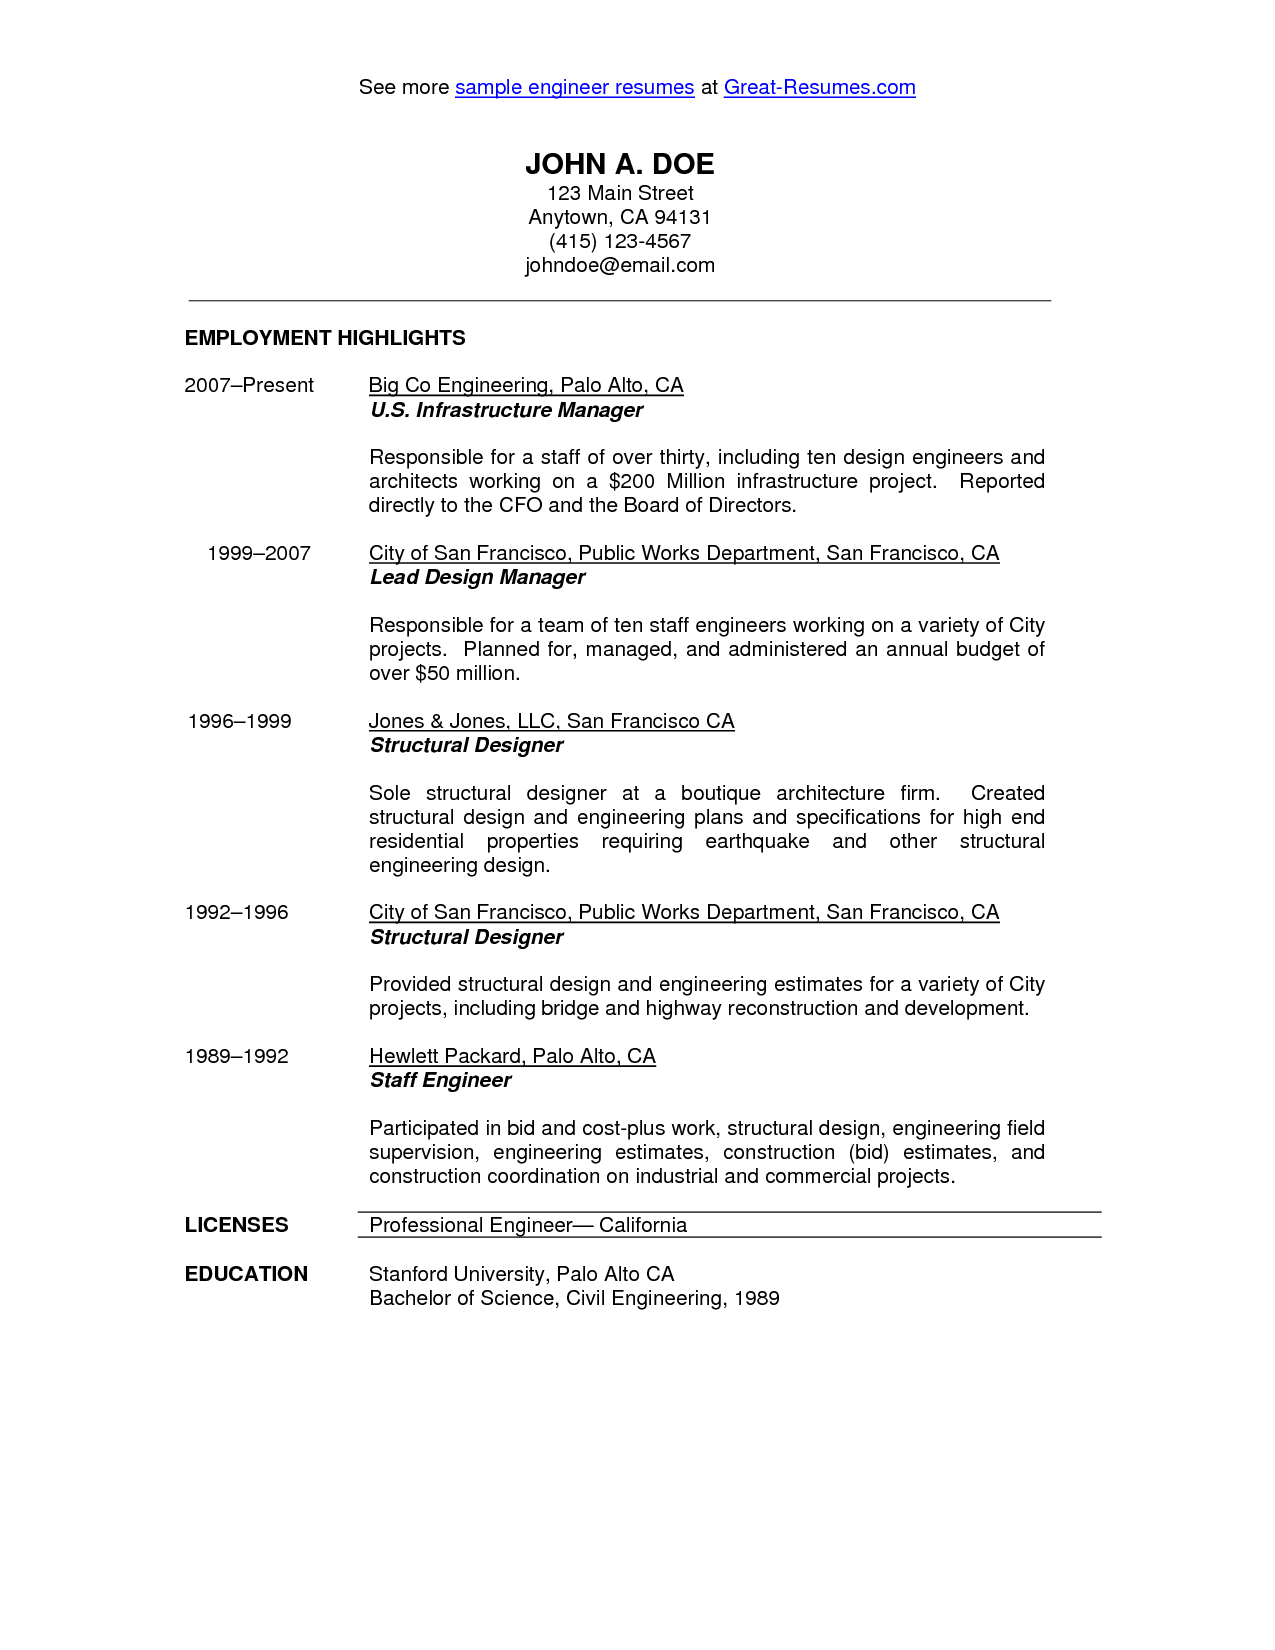 Resume Education Example Captivating Civil Engineer Resume Sample  Httpwwwresumecareercivil 2018